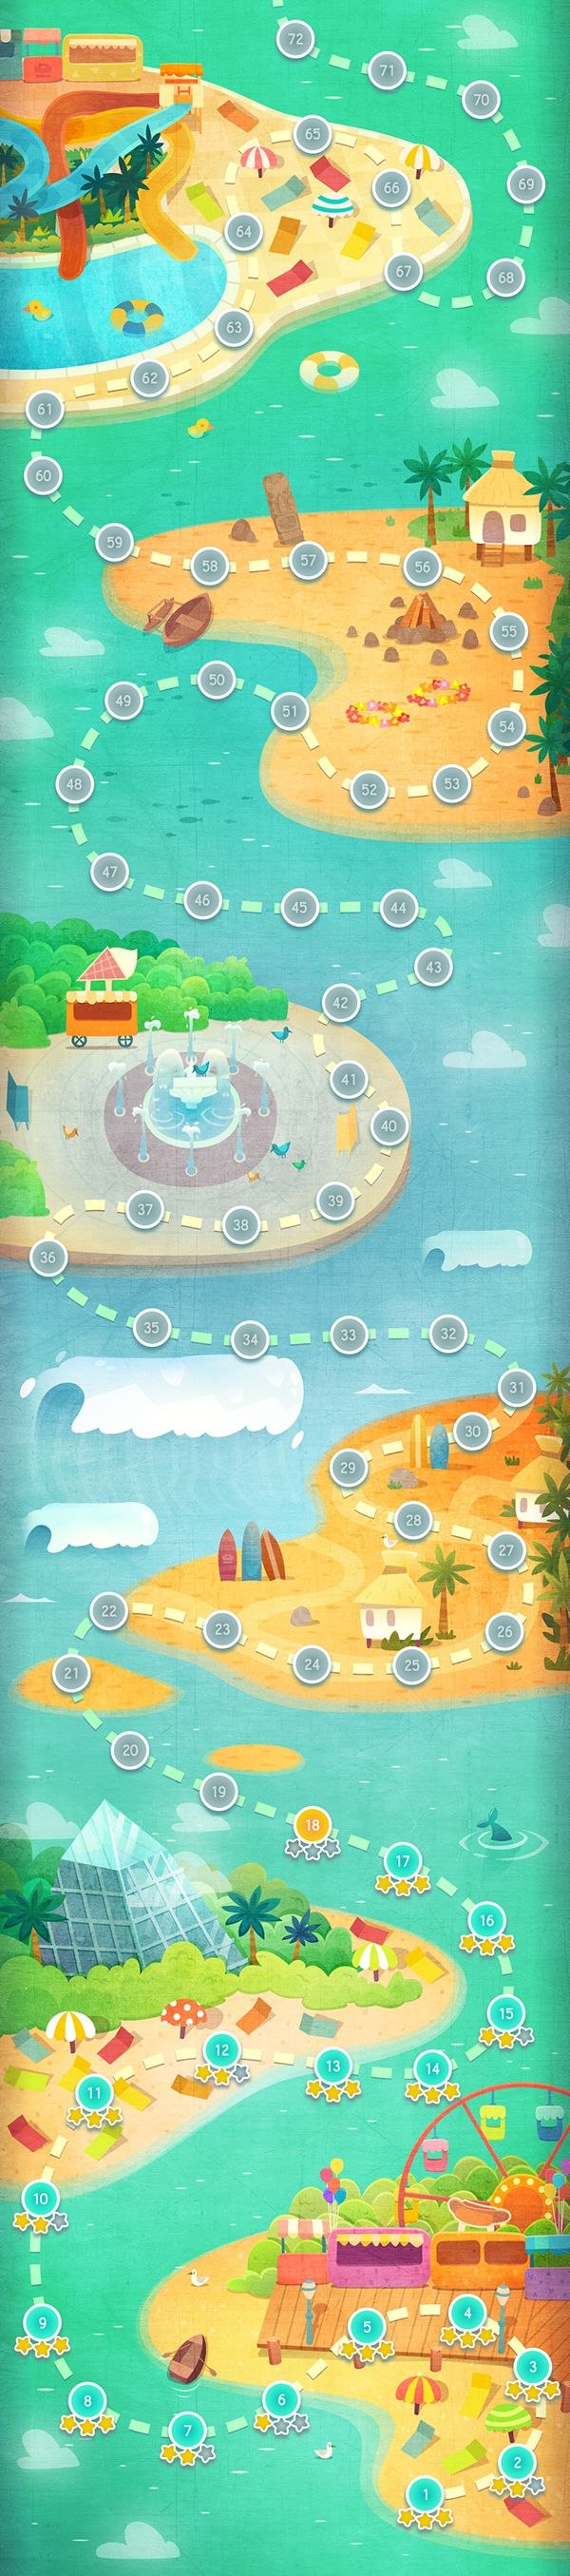 Graphic and UI design for mobile game